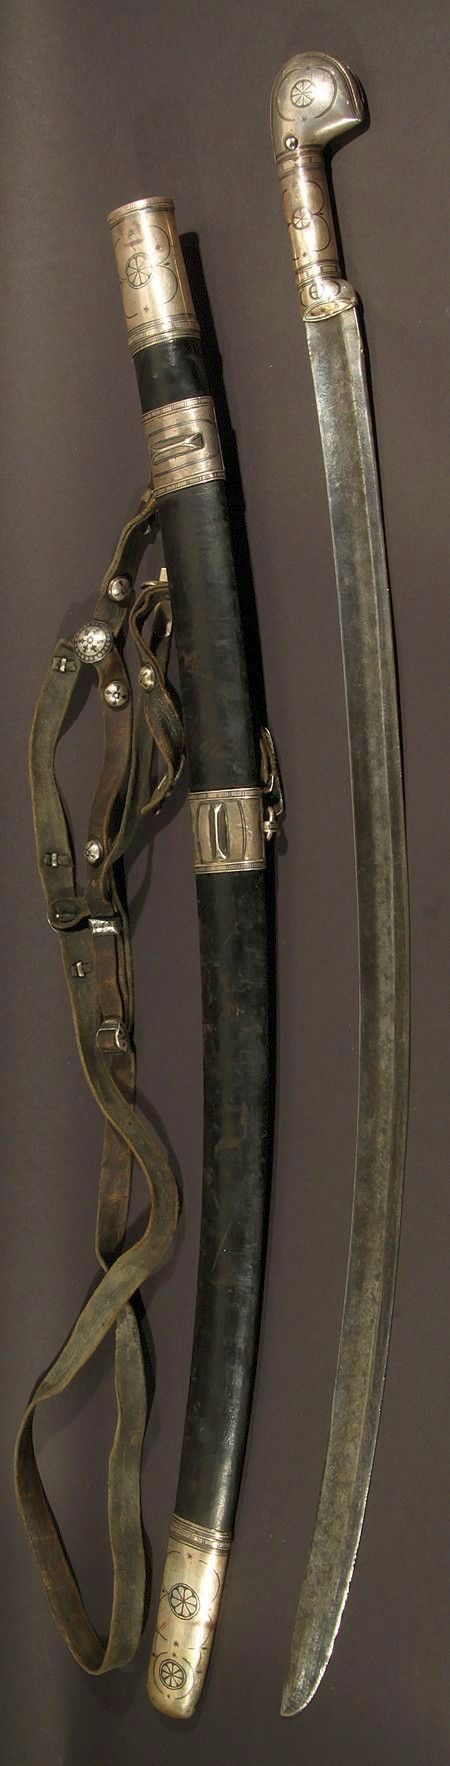 Circassian / Caucasian shashka sword, neillo mounts with leather sword belt, late 19th to early 20th century.